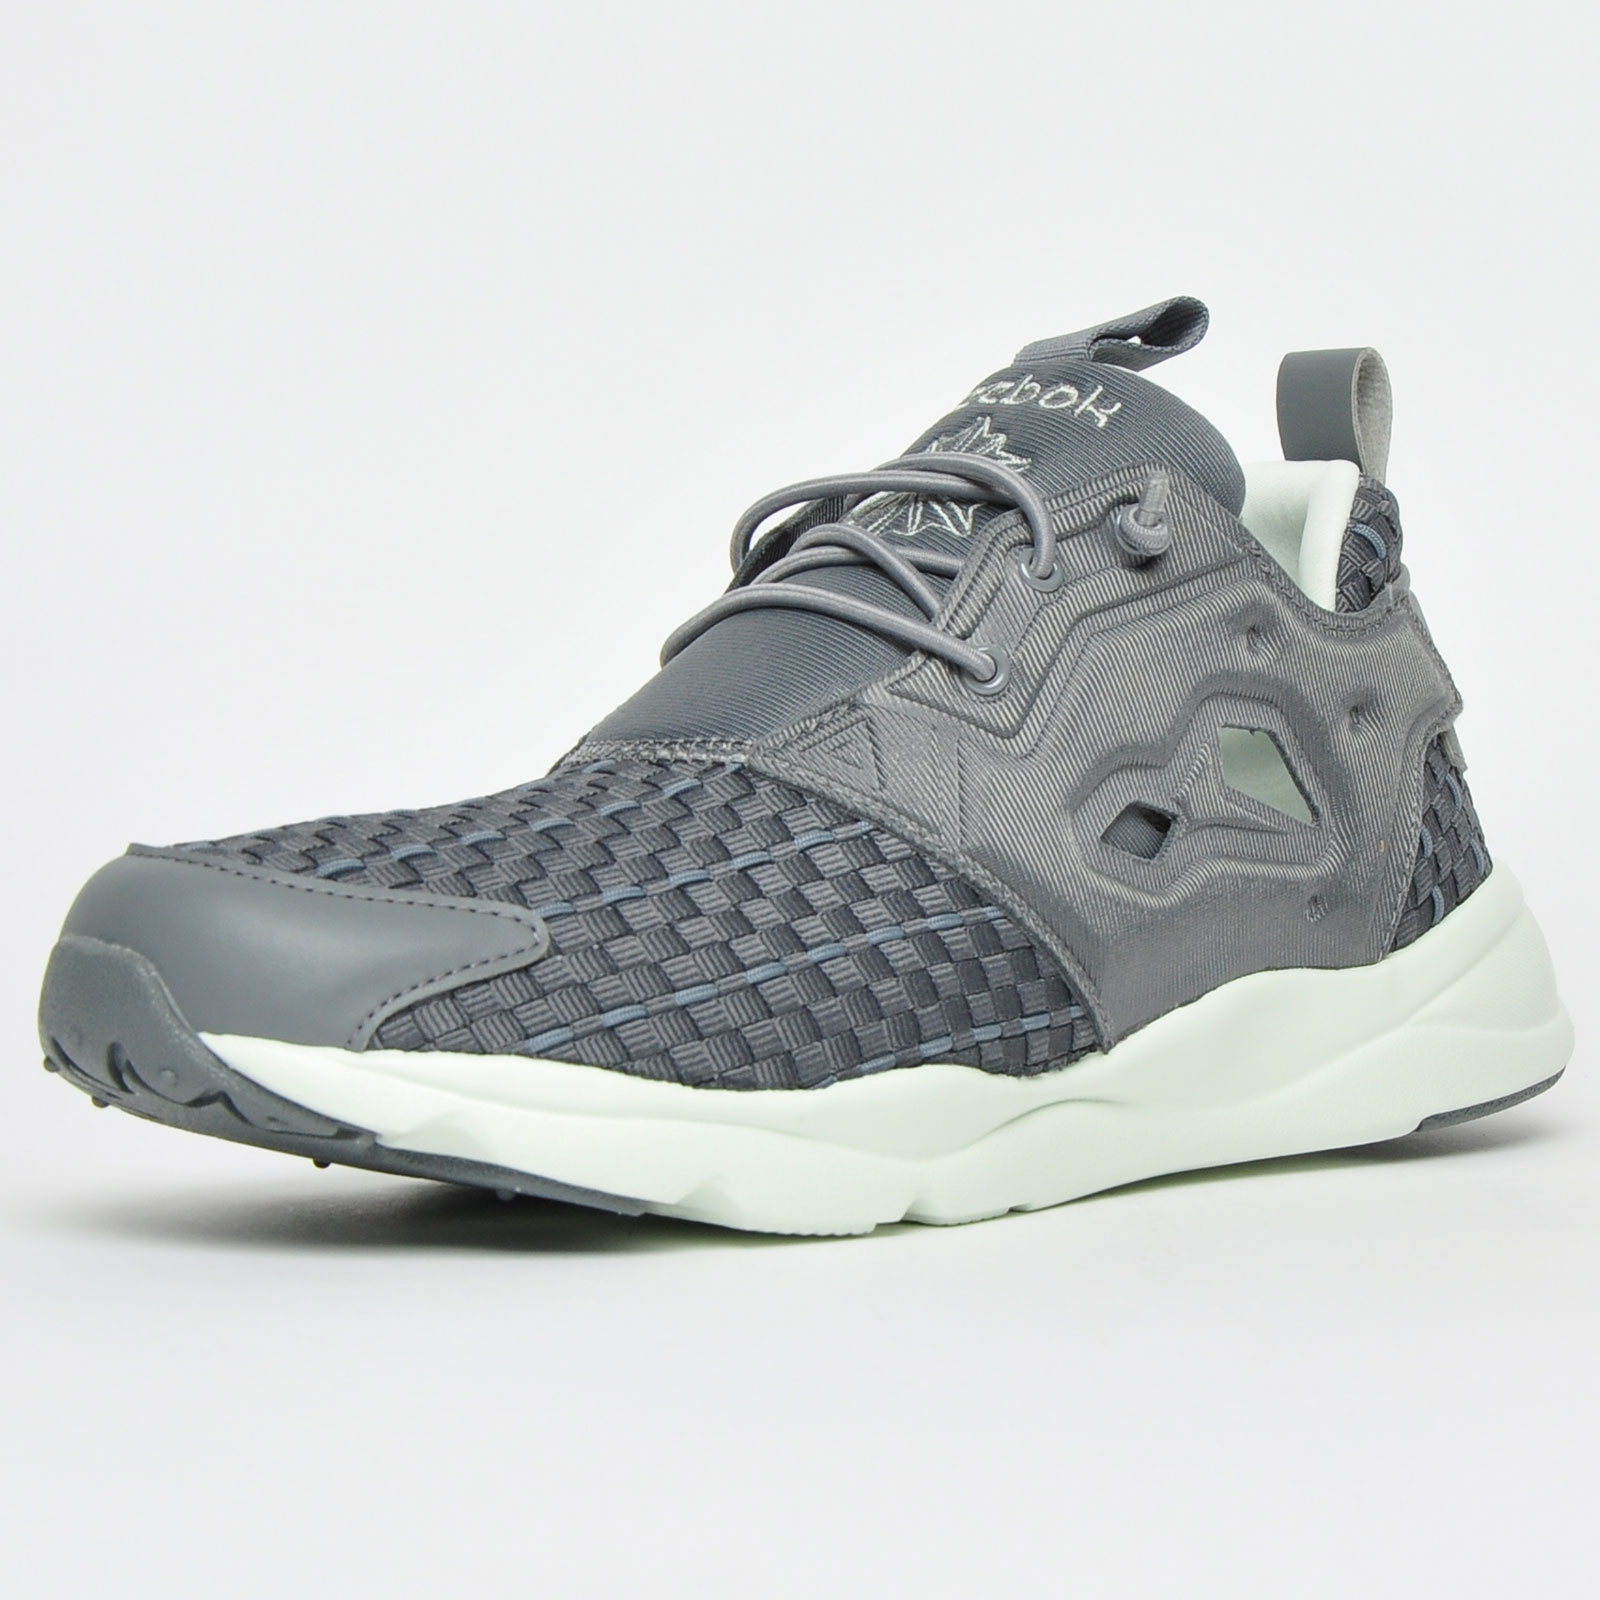 Details about Reebok Classic FuryLite New Woven Womens Fitness Gym Trainers  Grey c8968524a